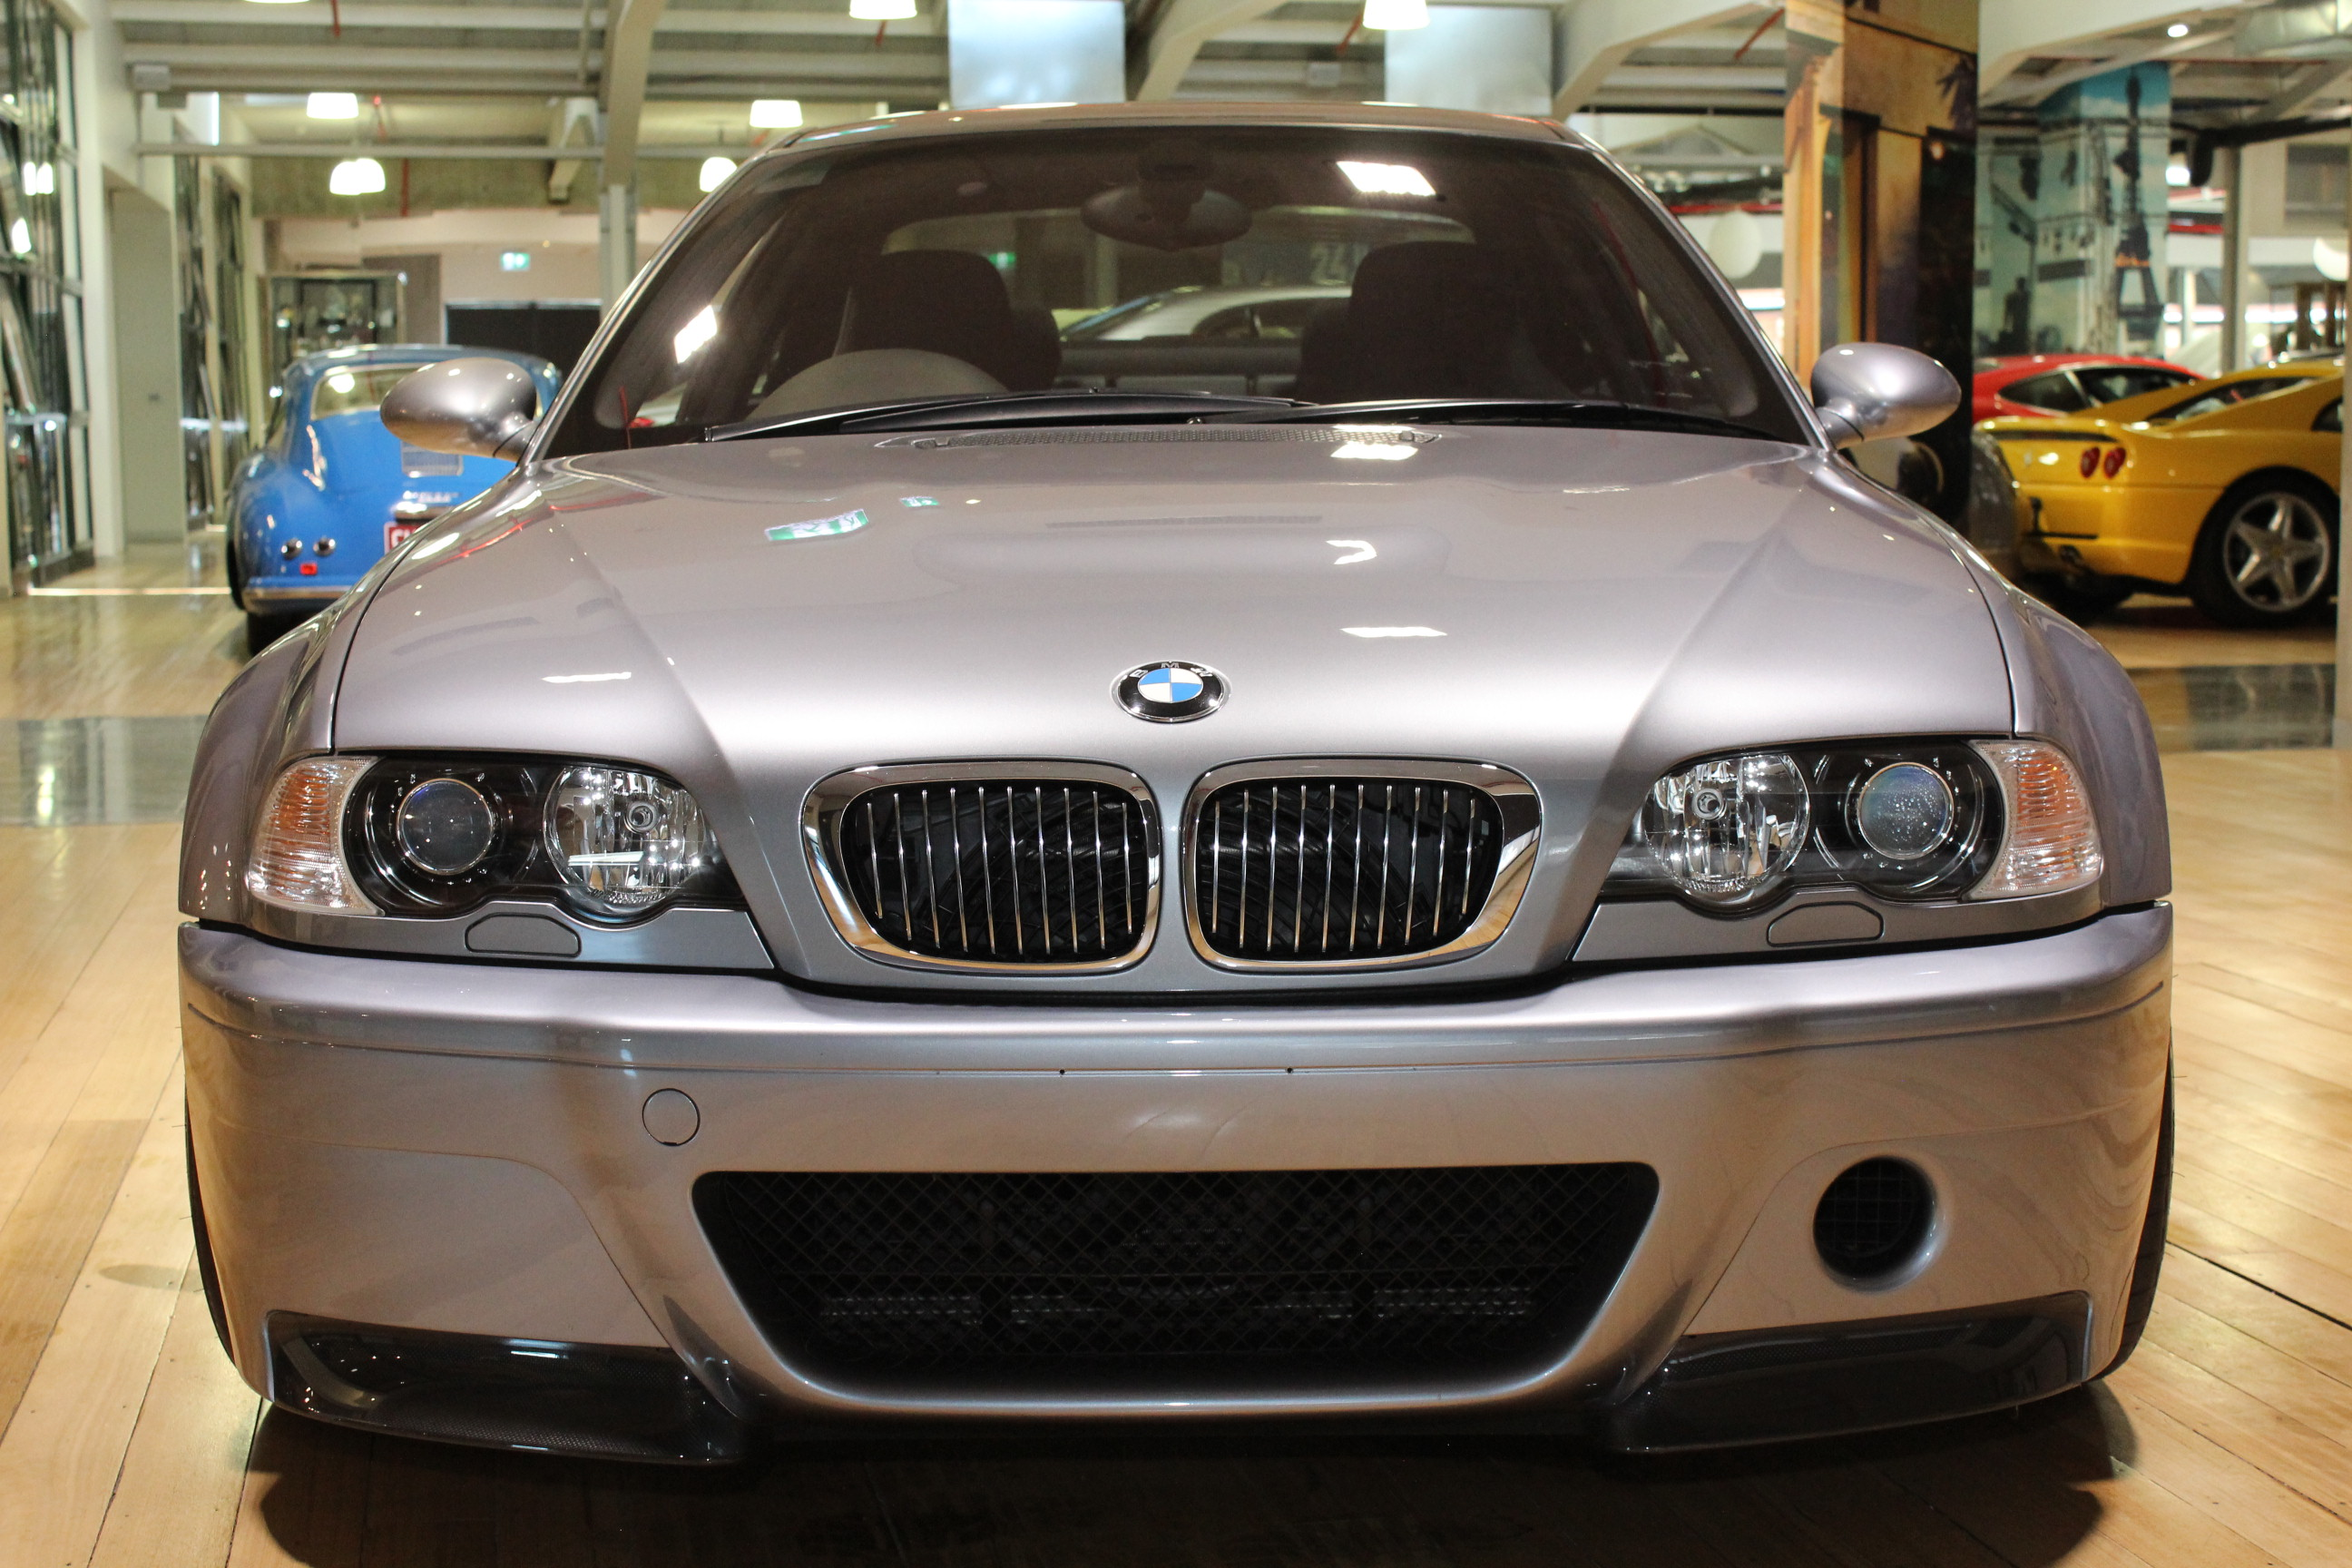 2004 Bmw M3 E46 Csl Coupe 2dr Smg 6sp 3 2i My04